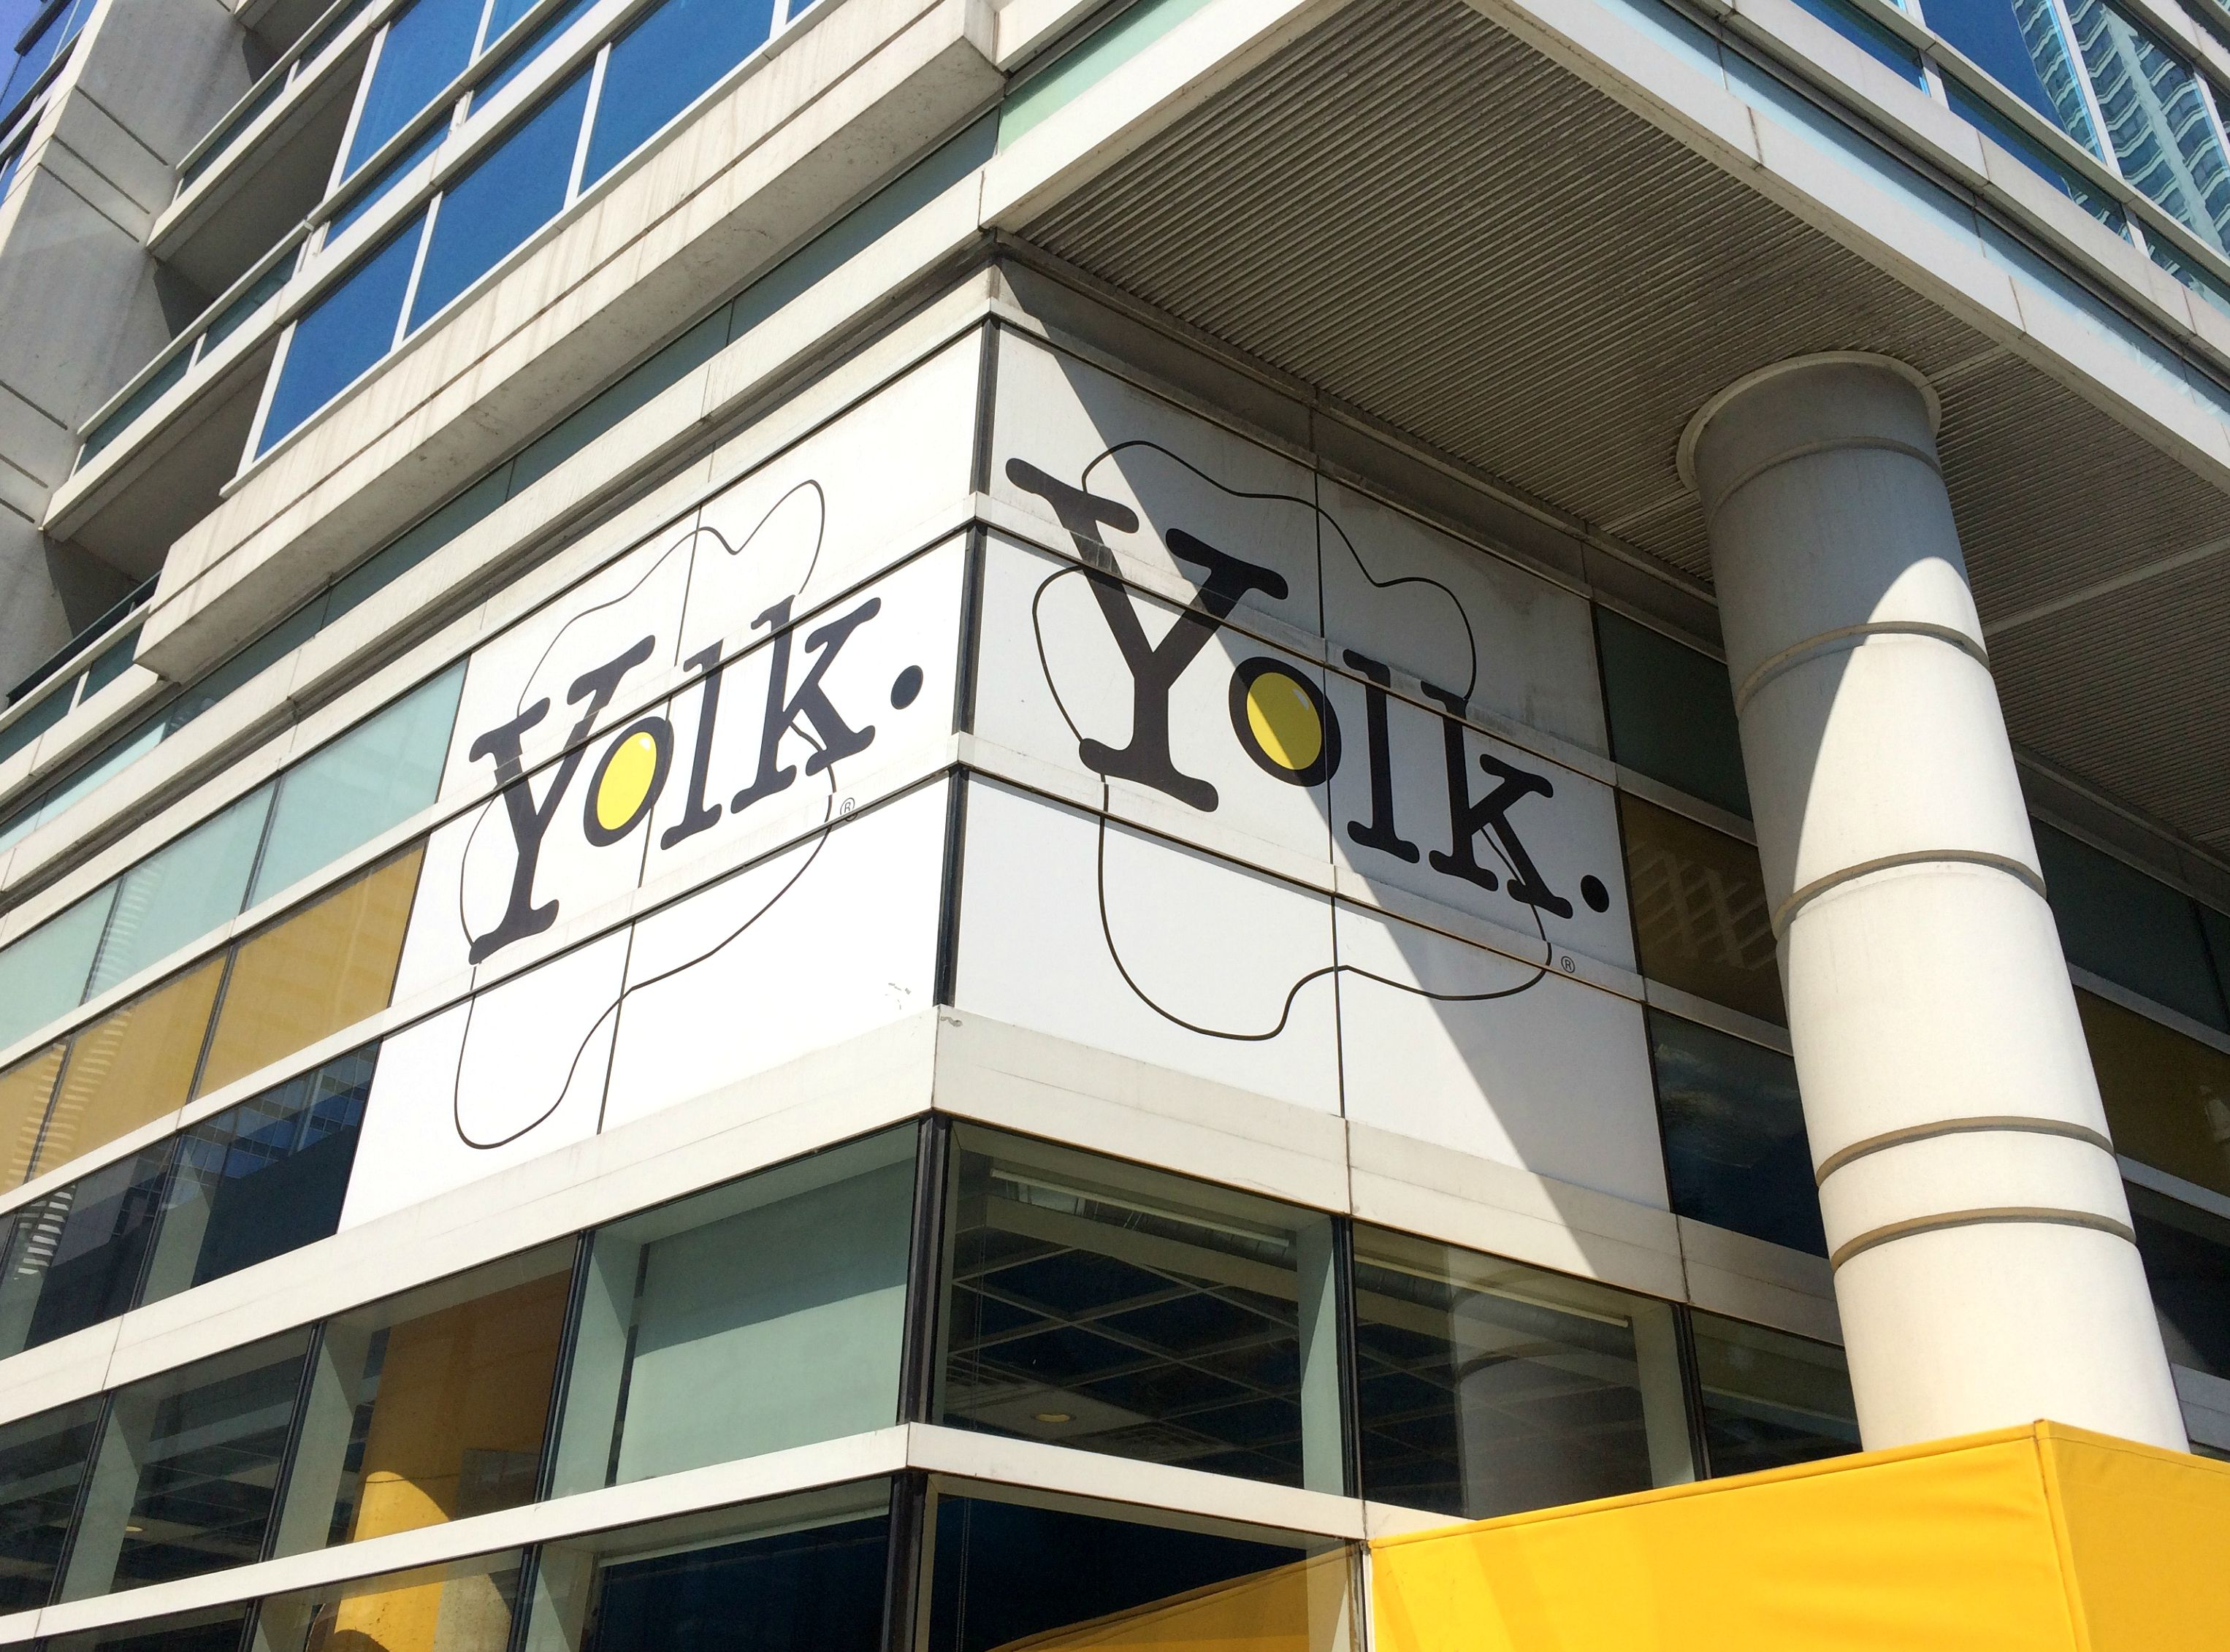 Yolk chicago